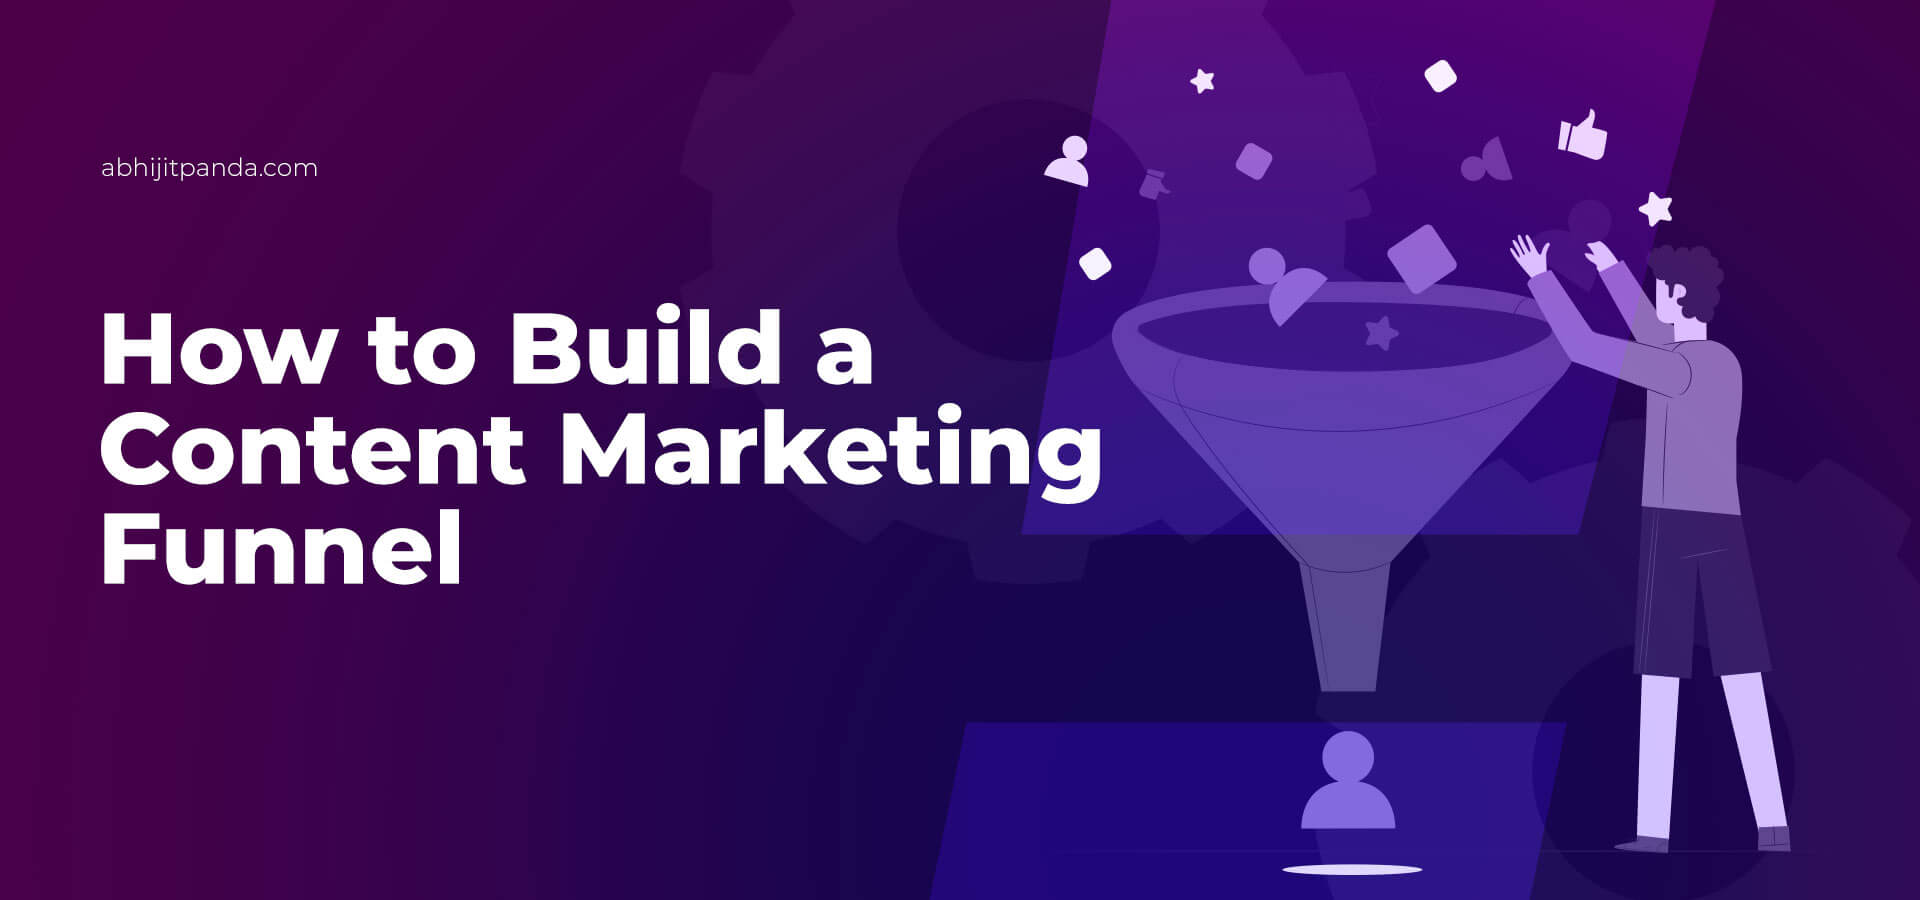 How to Build a Content